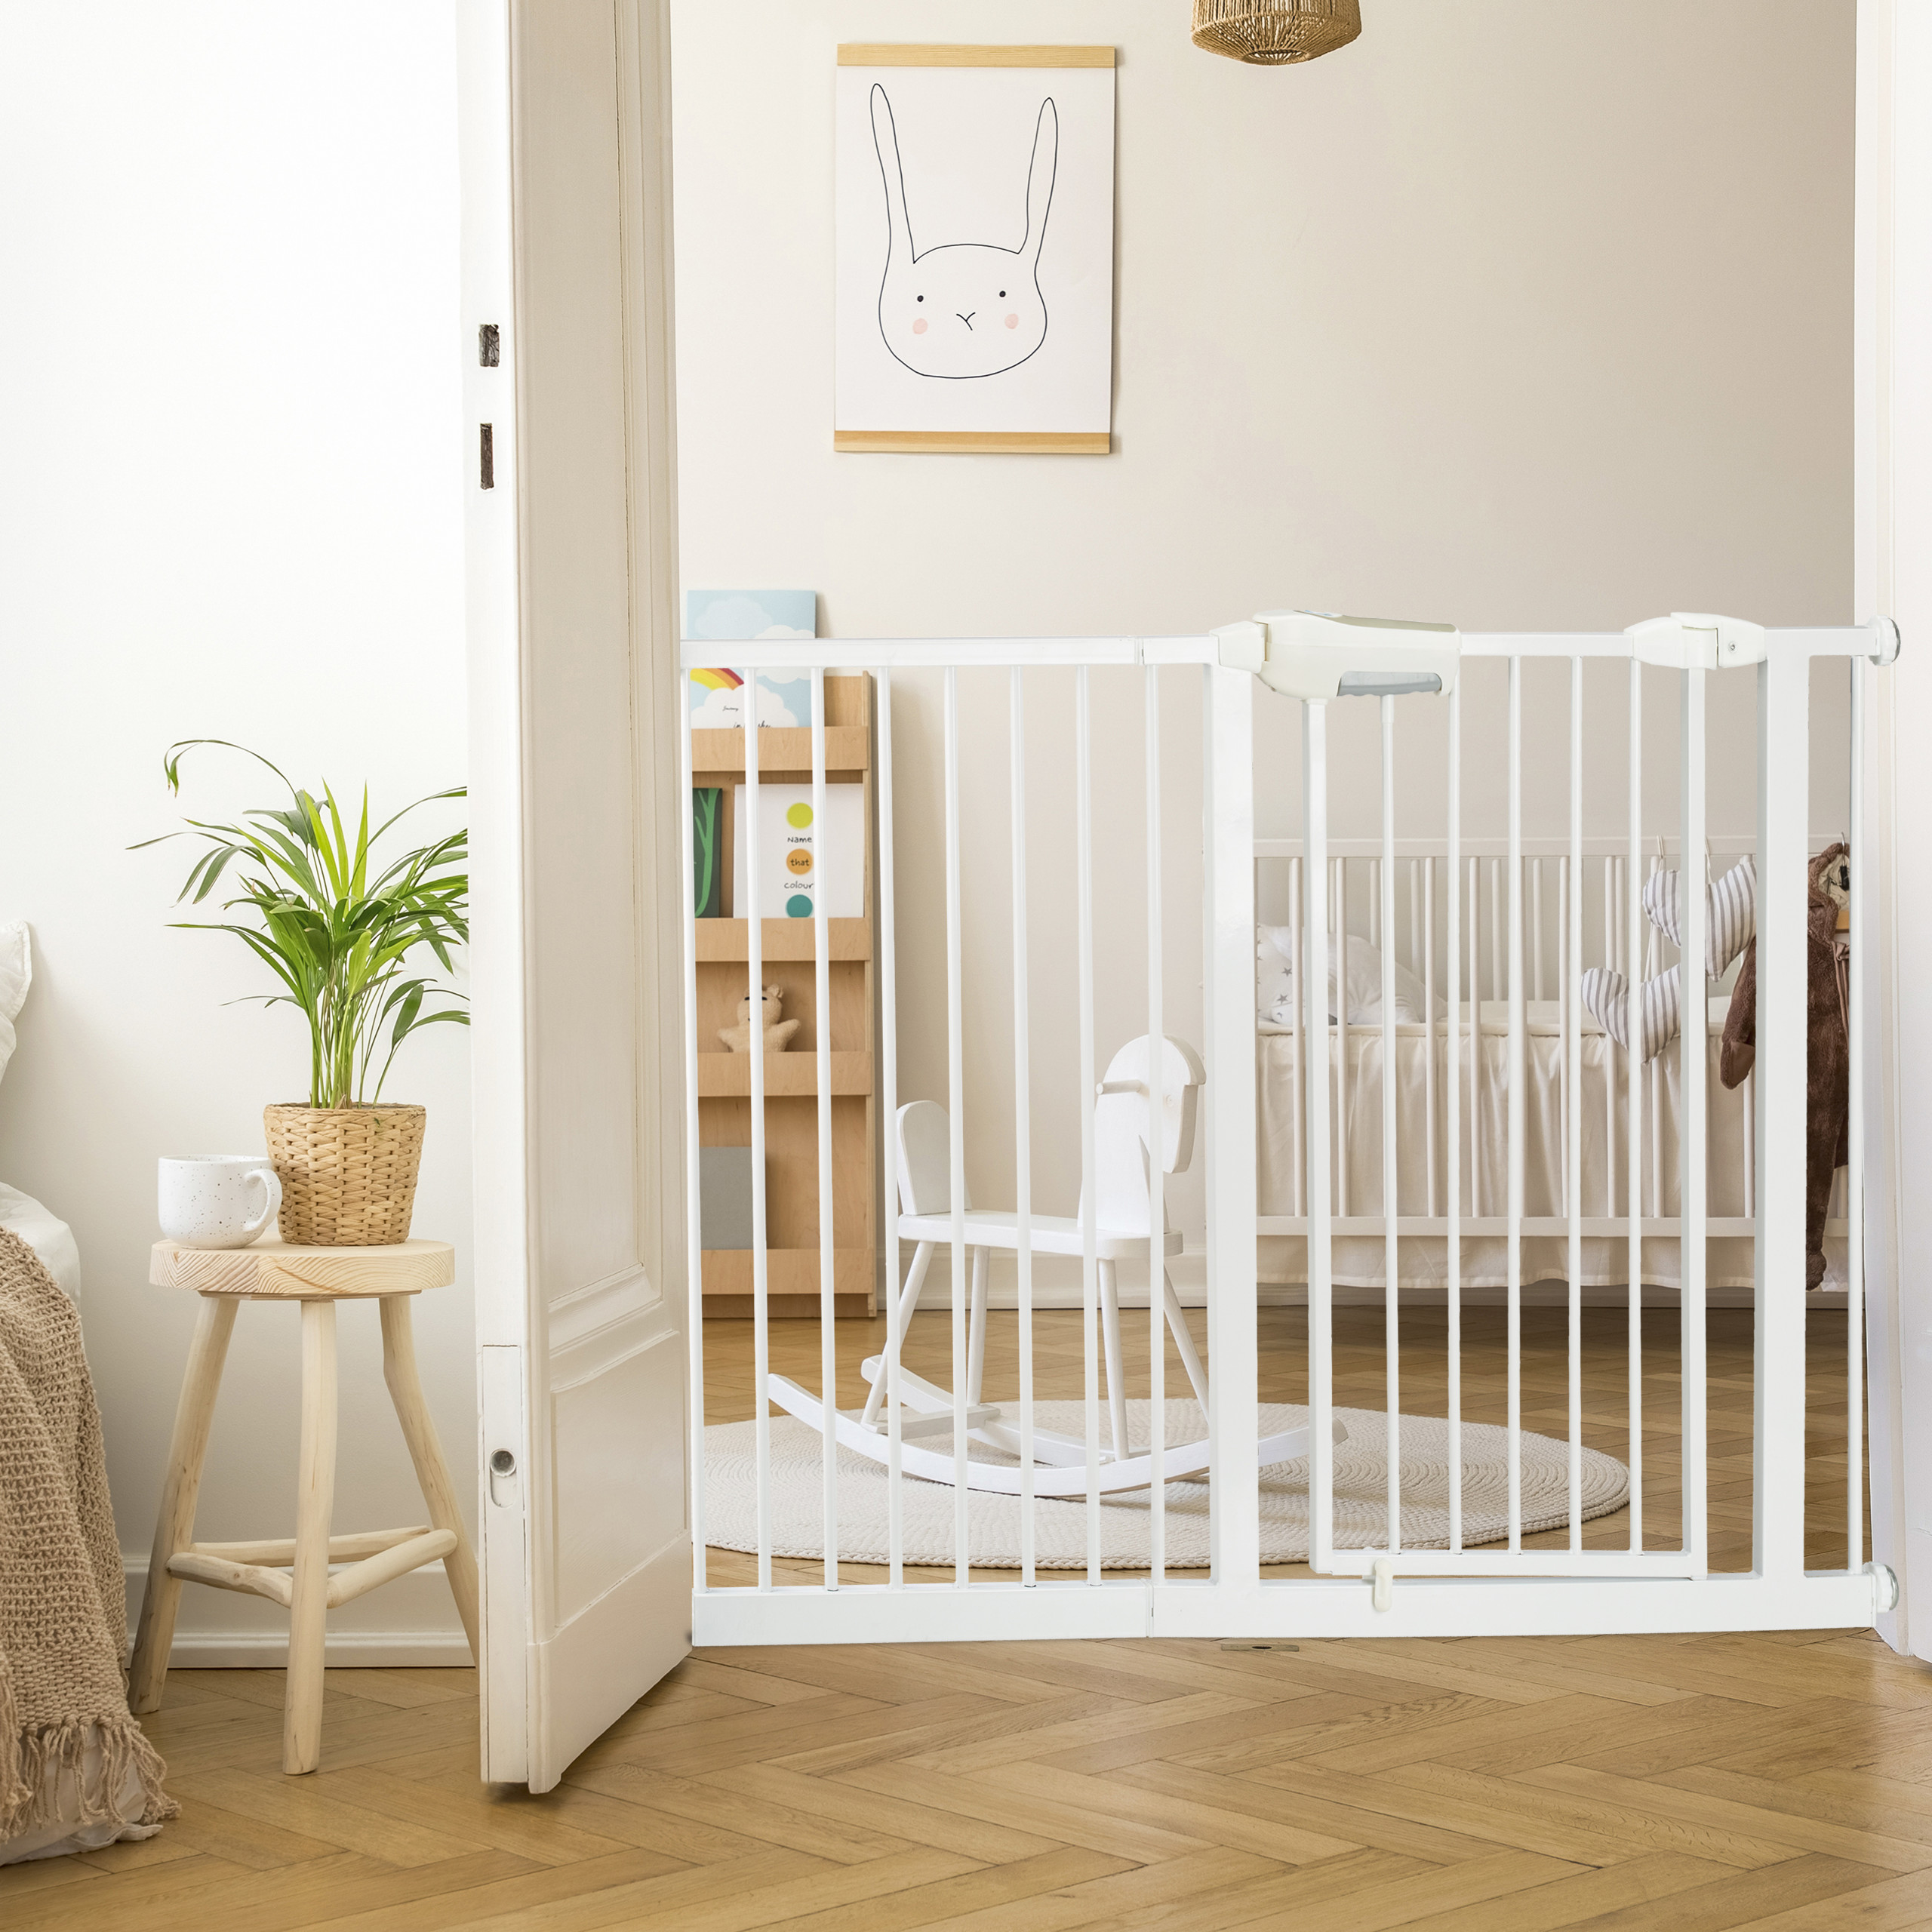 Pressure-Fit-Baby-Safety-Gate-Extension-Security-Barrier-for-Stairs-and-Doors thumbnail 31